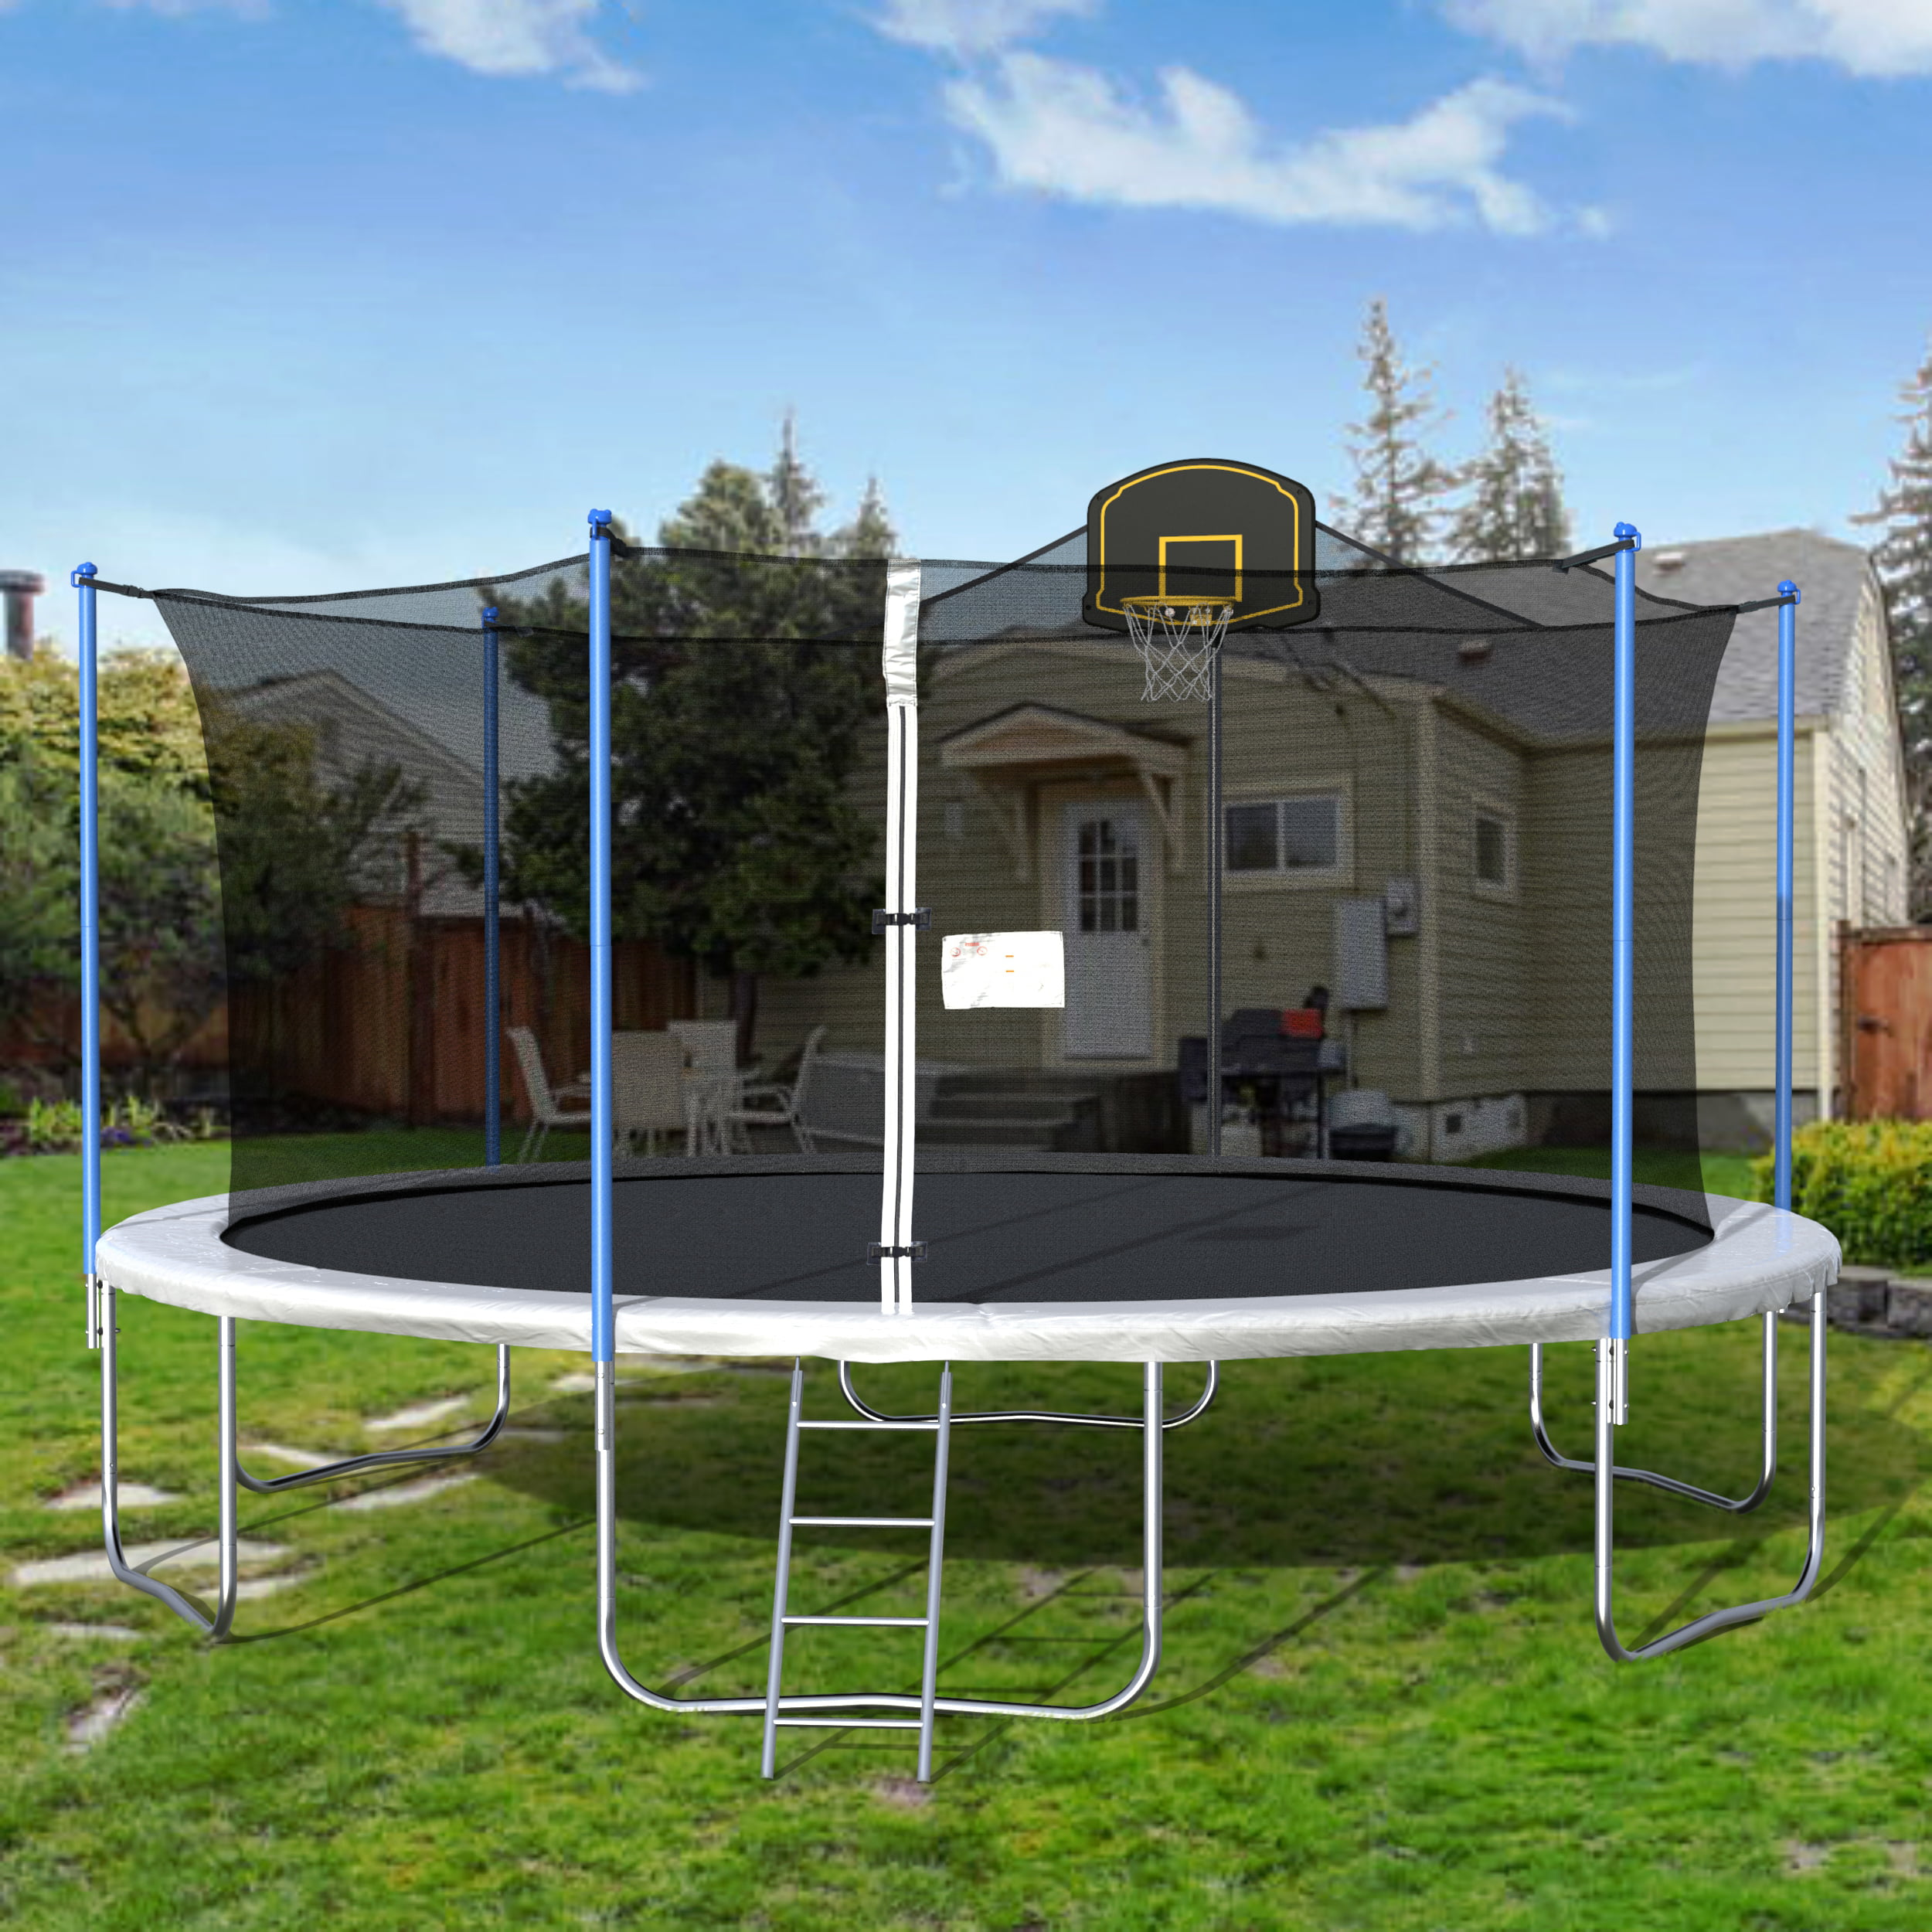 2020 New 16-Foot Trampoline, Kids Trampoline With Safety